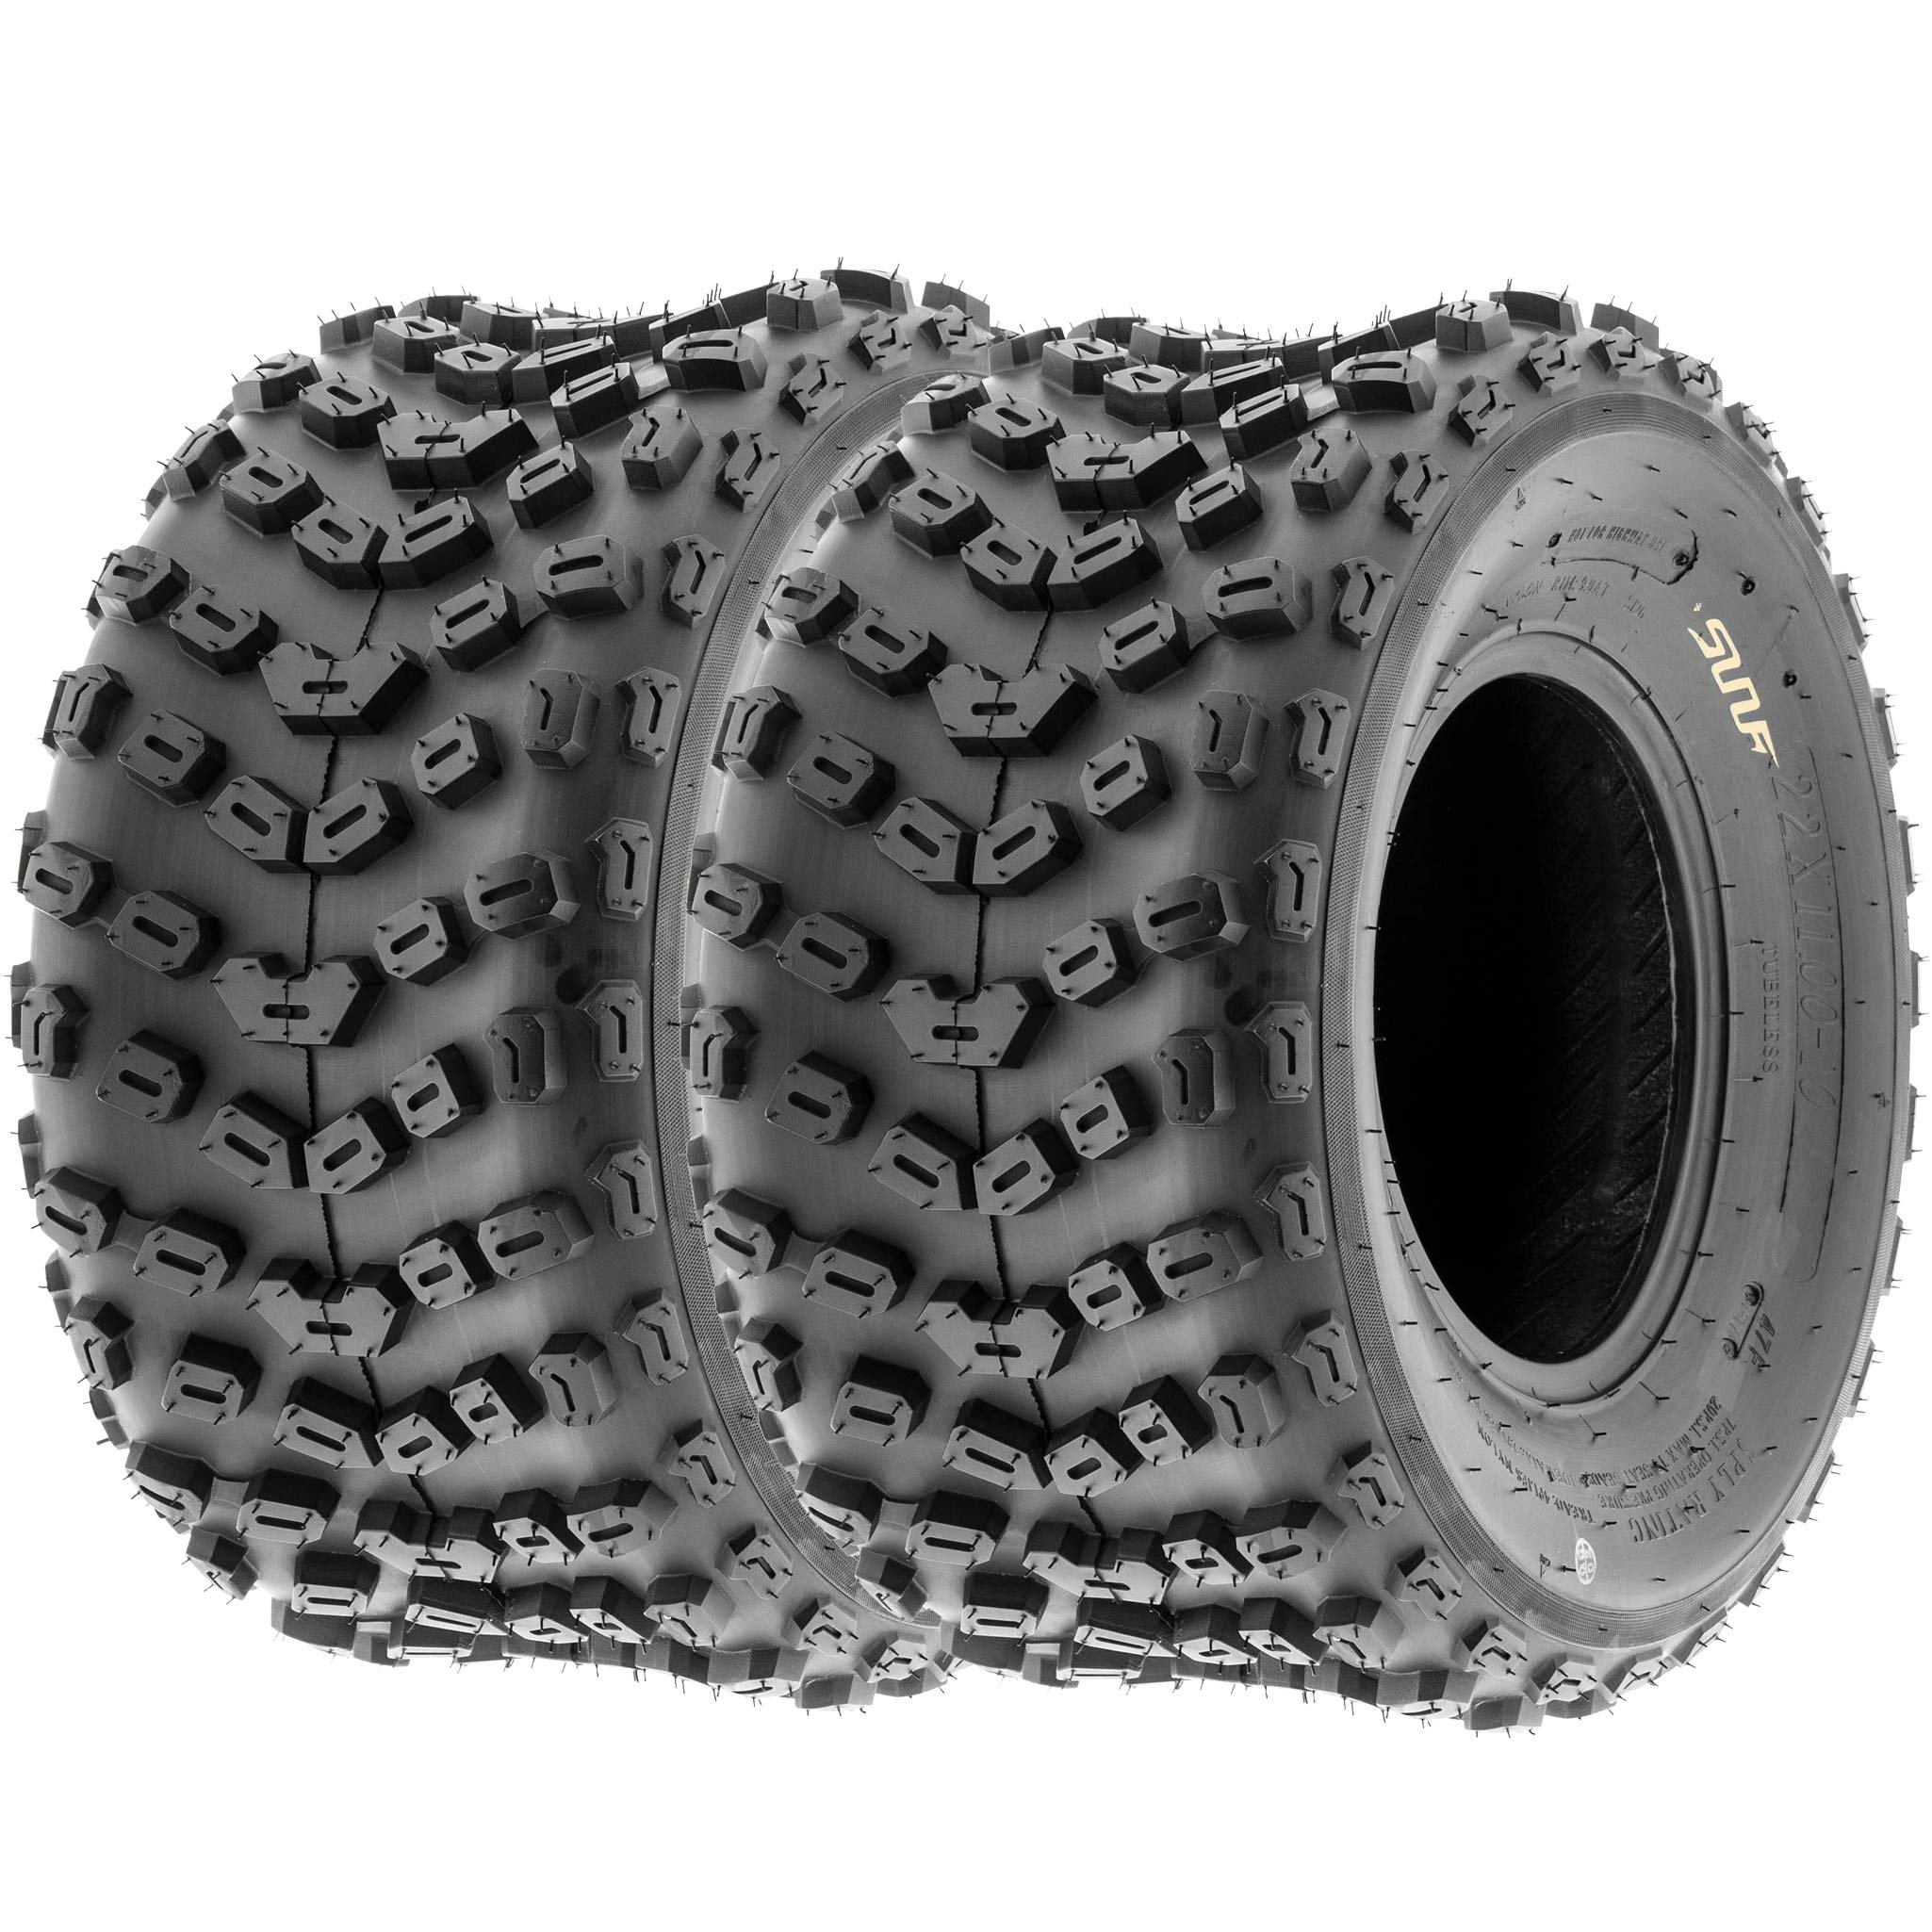 SunF ATV Dimple Knobby Sport Tires 18x10.5-9 18x10.5x9 4 PLY A005 (Set pair of 2)